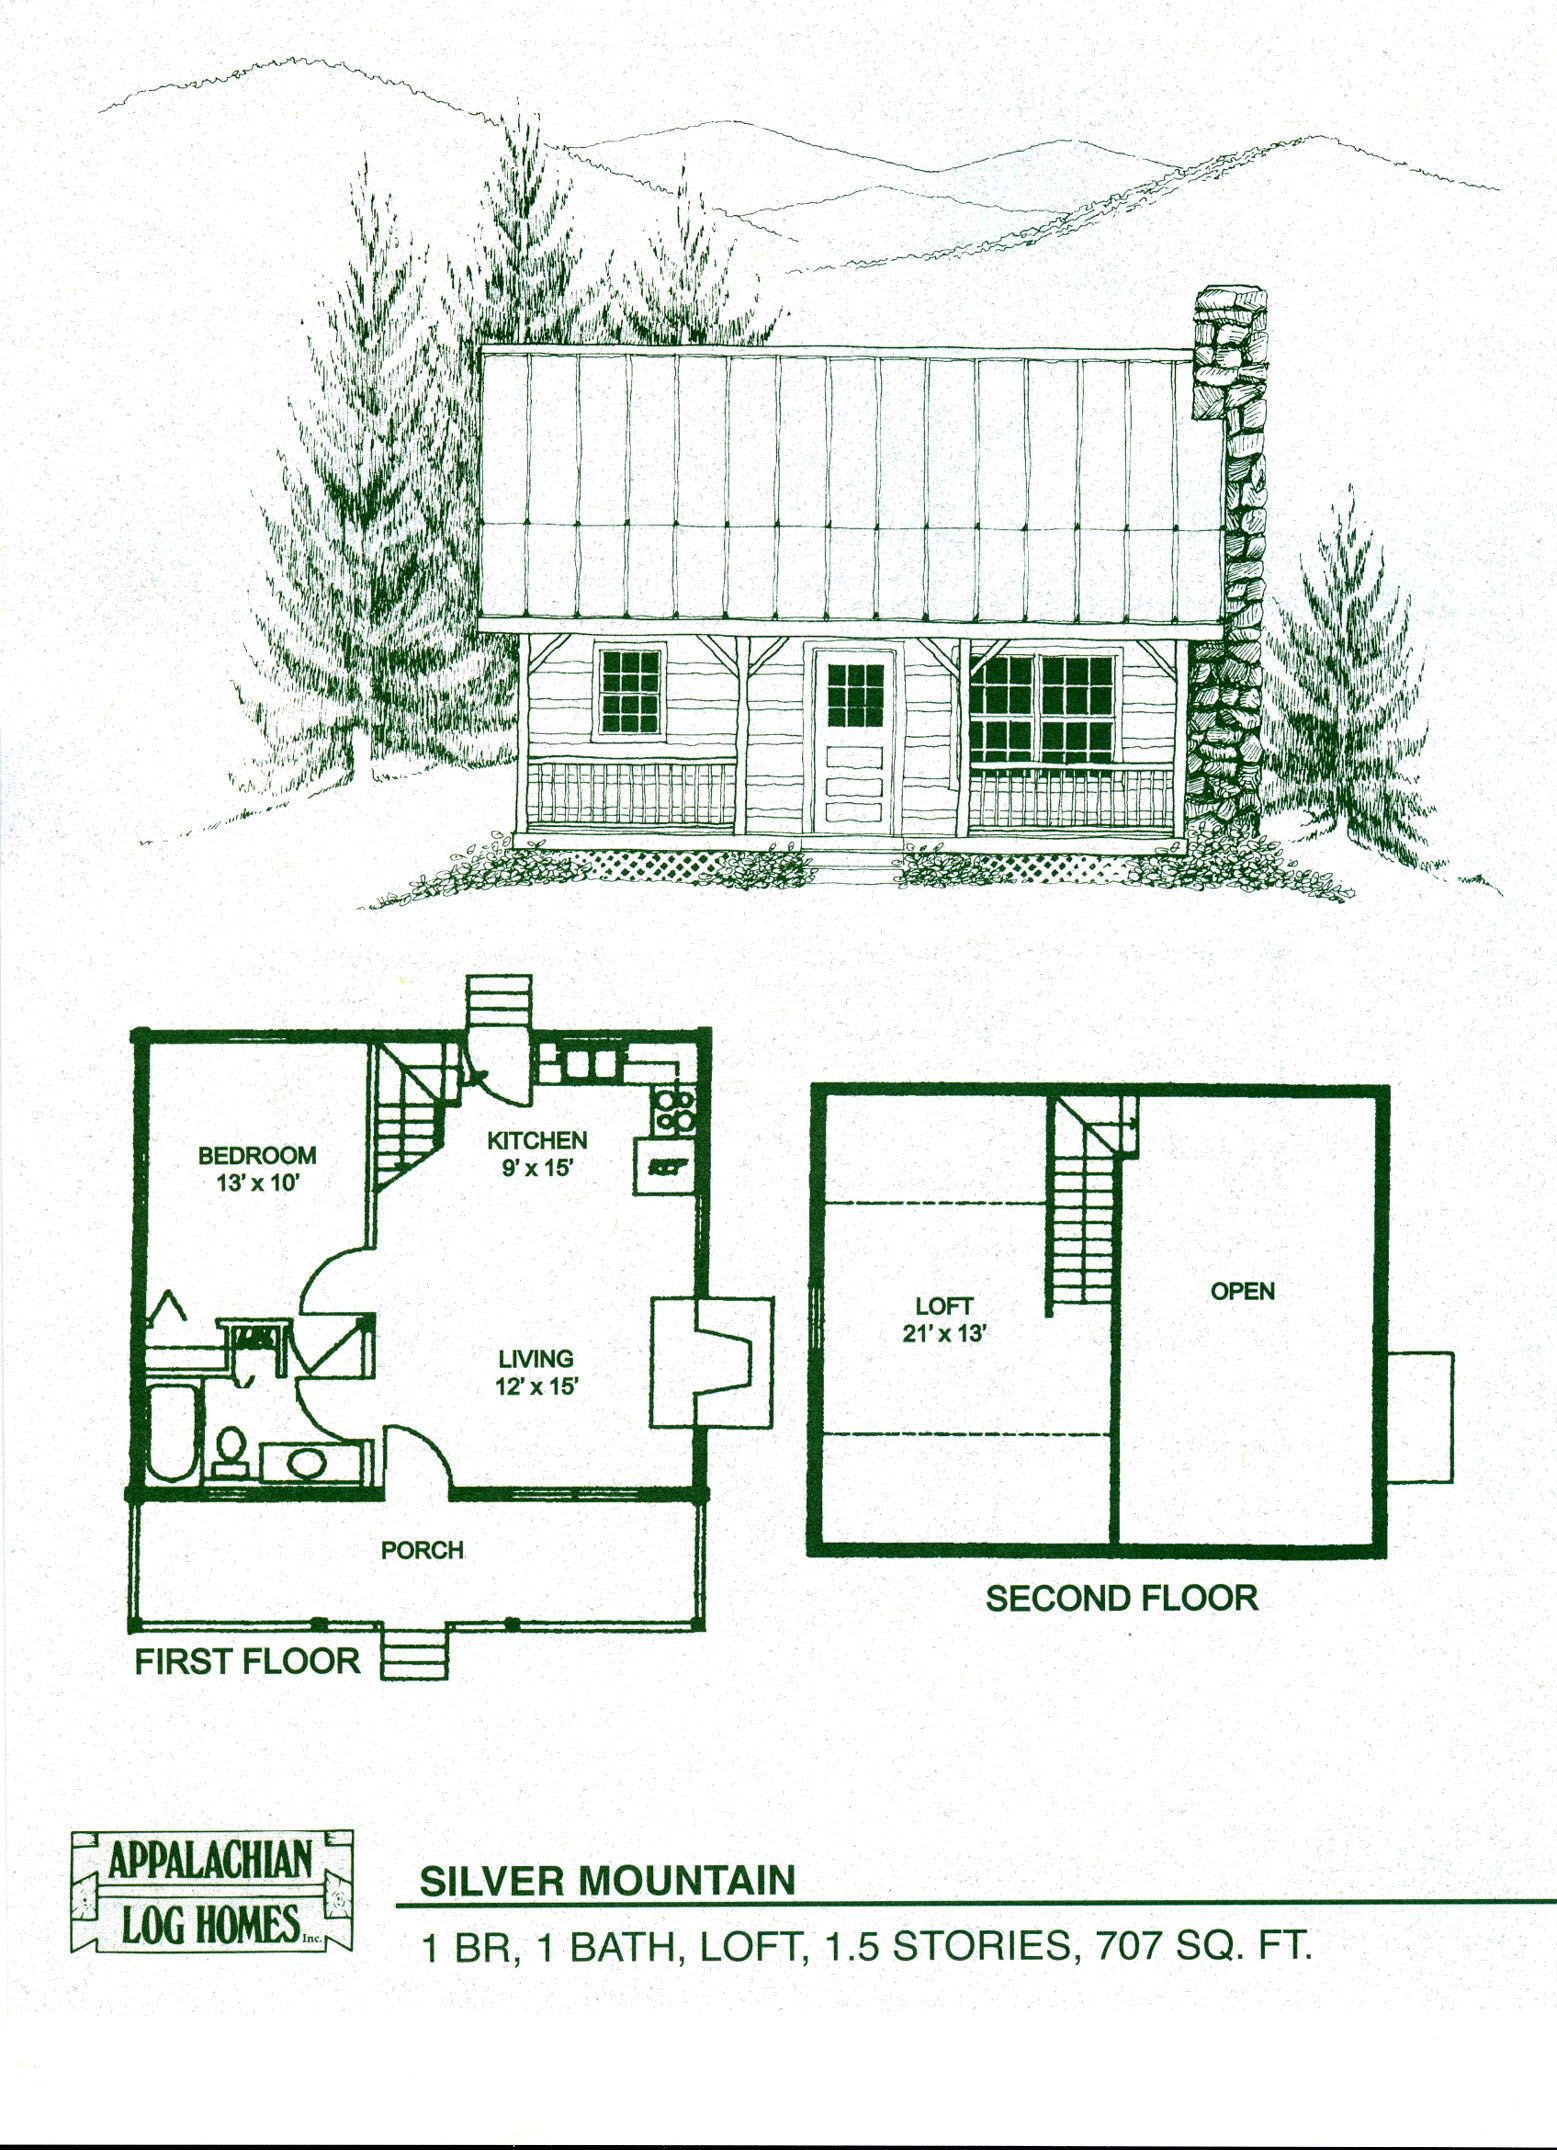 Open Floor Plans for Small Homes Unique Small Cabin with Loft Floorplans